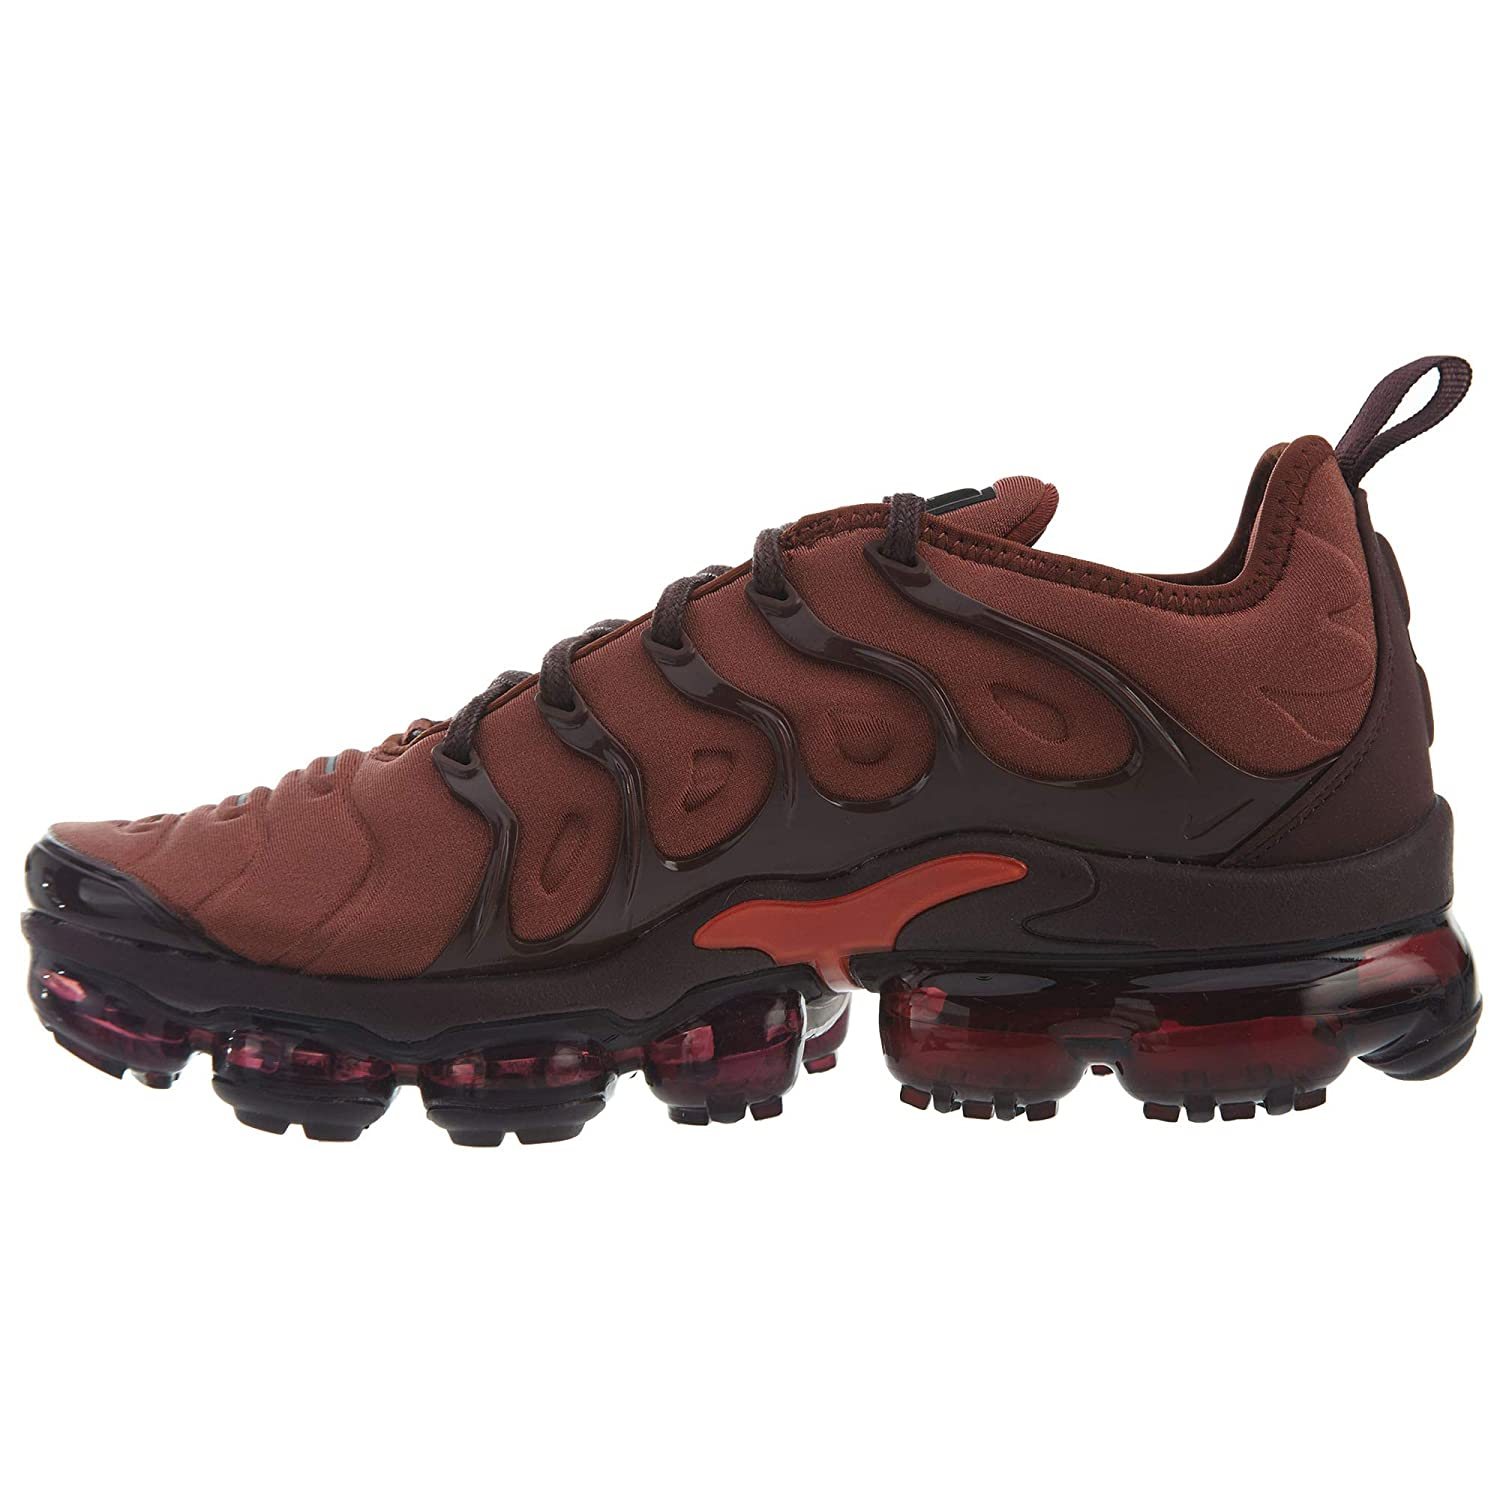 68db5bfb4aa52 Nike Women s W Air Vapormax Plus Fitness Shoes  Amazon.co.uk  Shoes   Bags